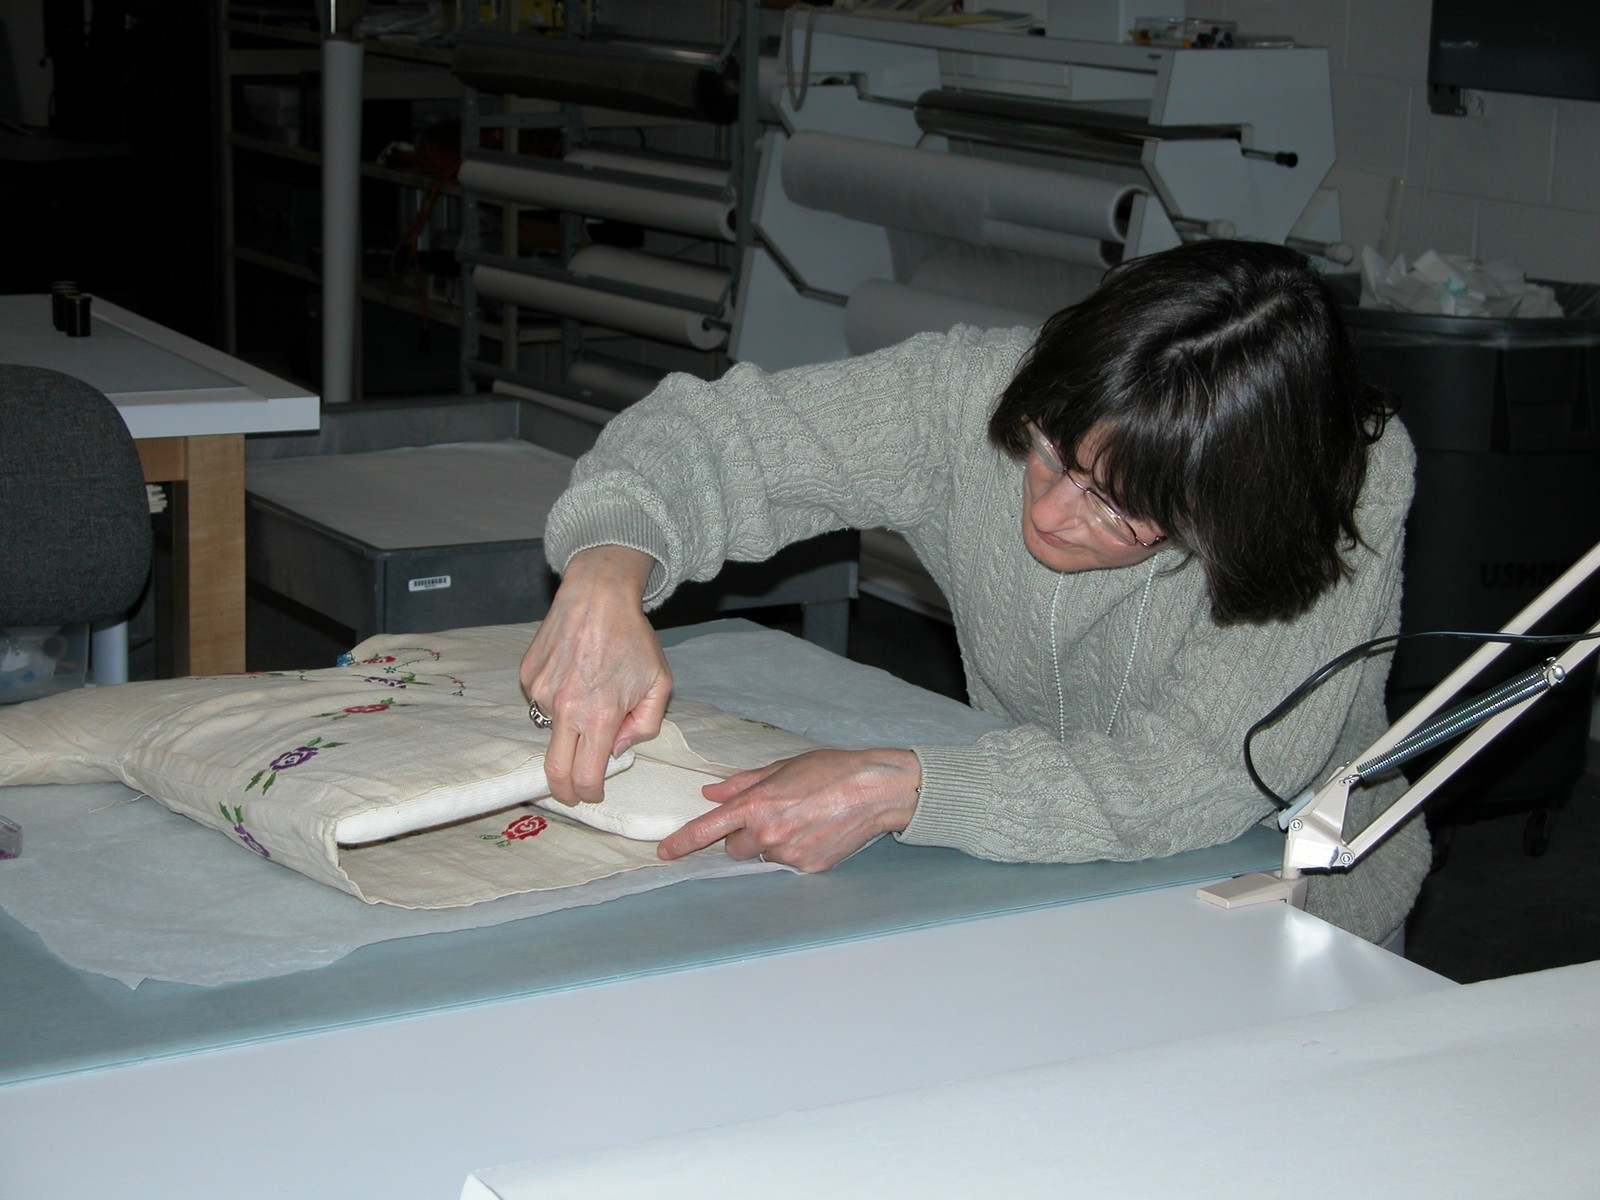 Textile conservator Gail Singer prepares a mount to display a dress worn by a Jewish child while living in hiding in Poland during World War II.  The dress was donated to the U.S. Holocaust Memorial Museum by its owner, Lola Kaufman.